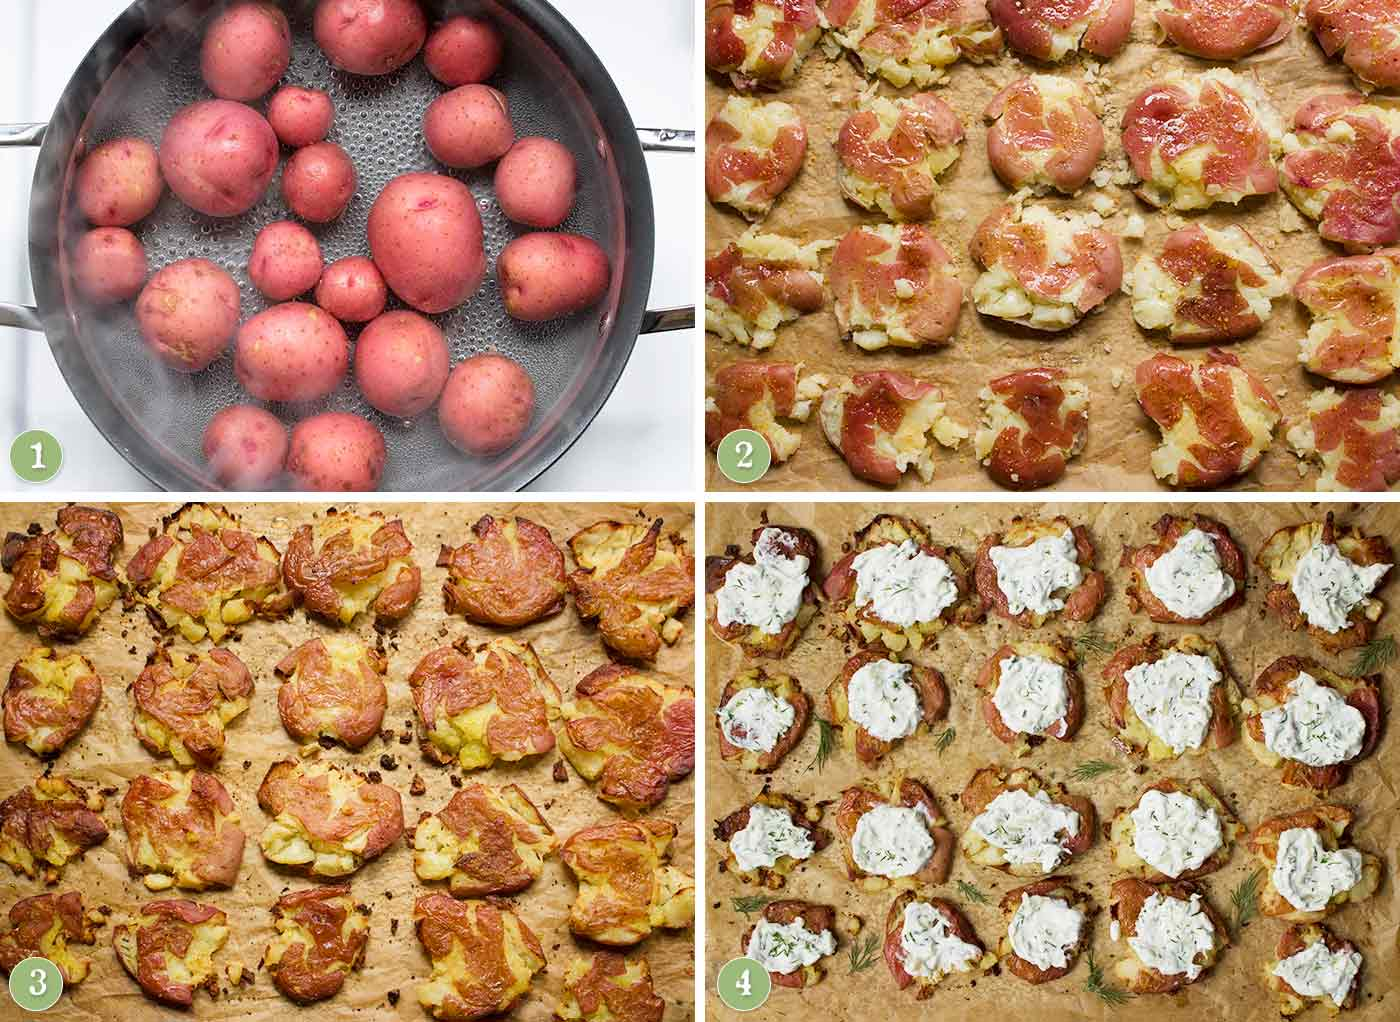 Steps for making crispy, smashed potatoes